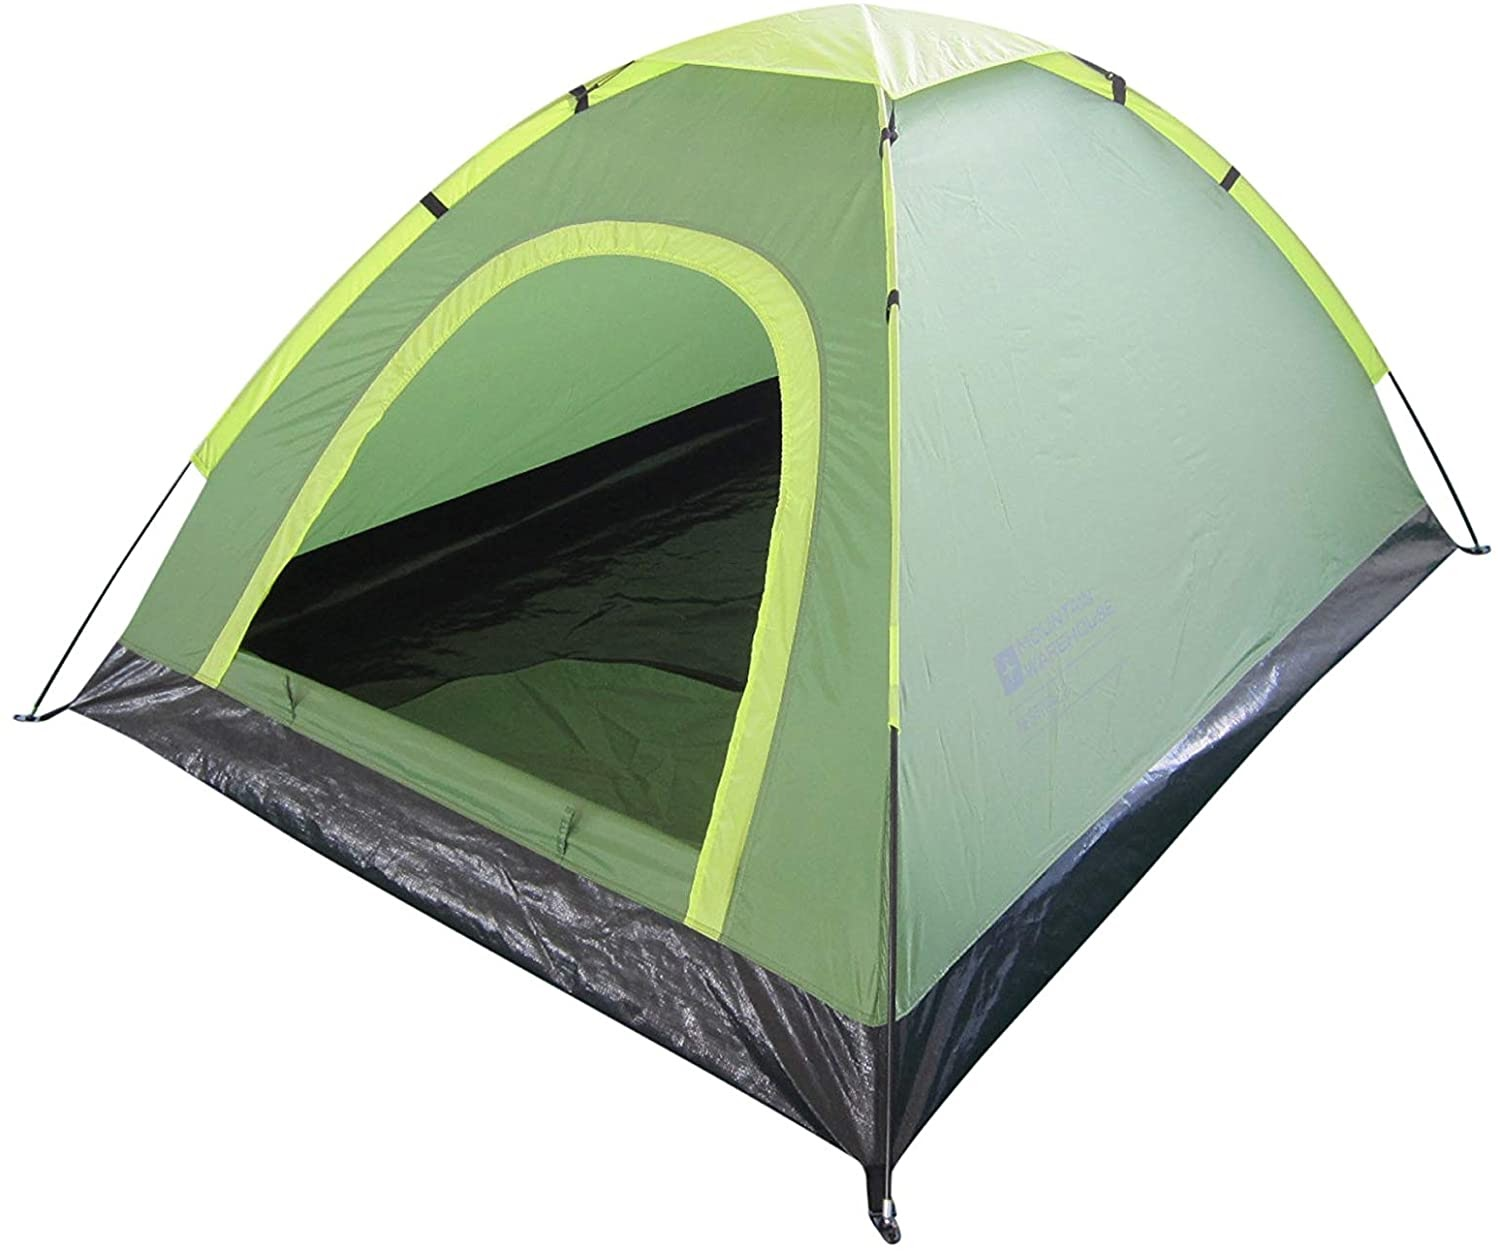 How To Waterproof A Tent - 5 Effective Ways To Do At Home 2021